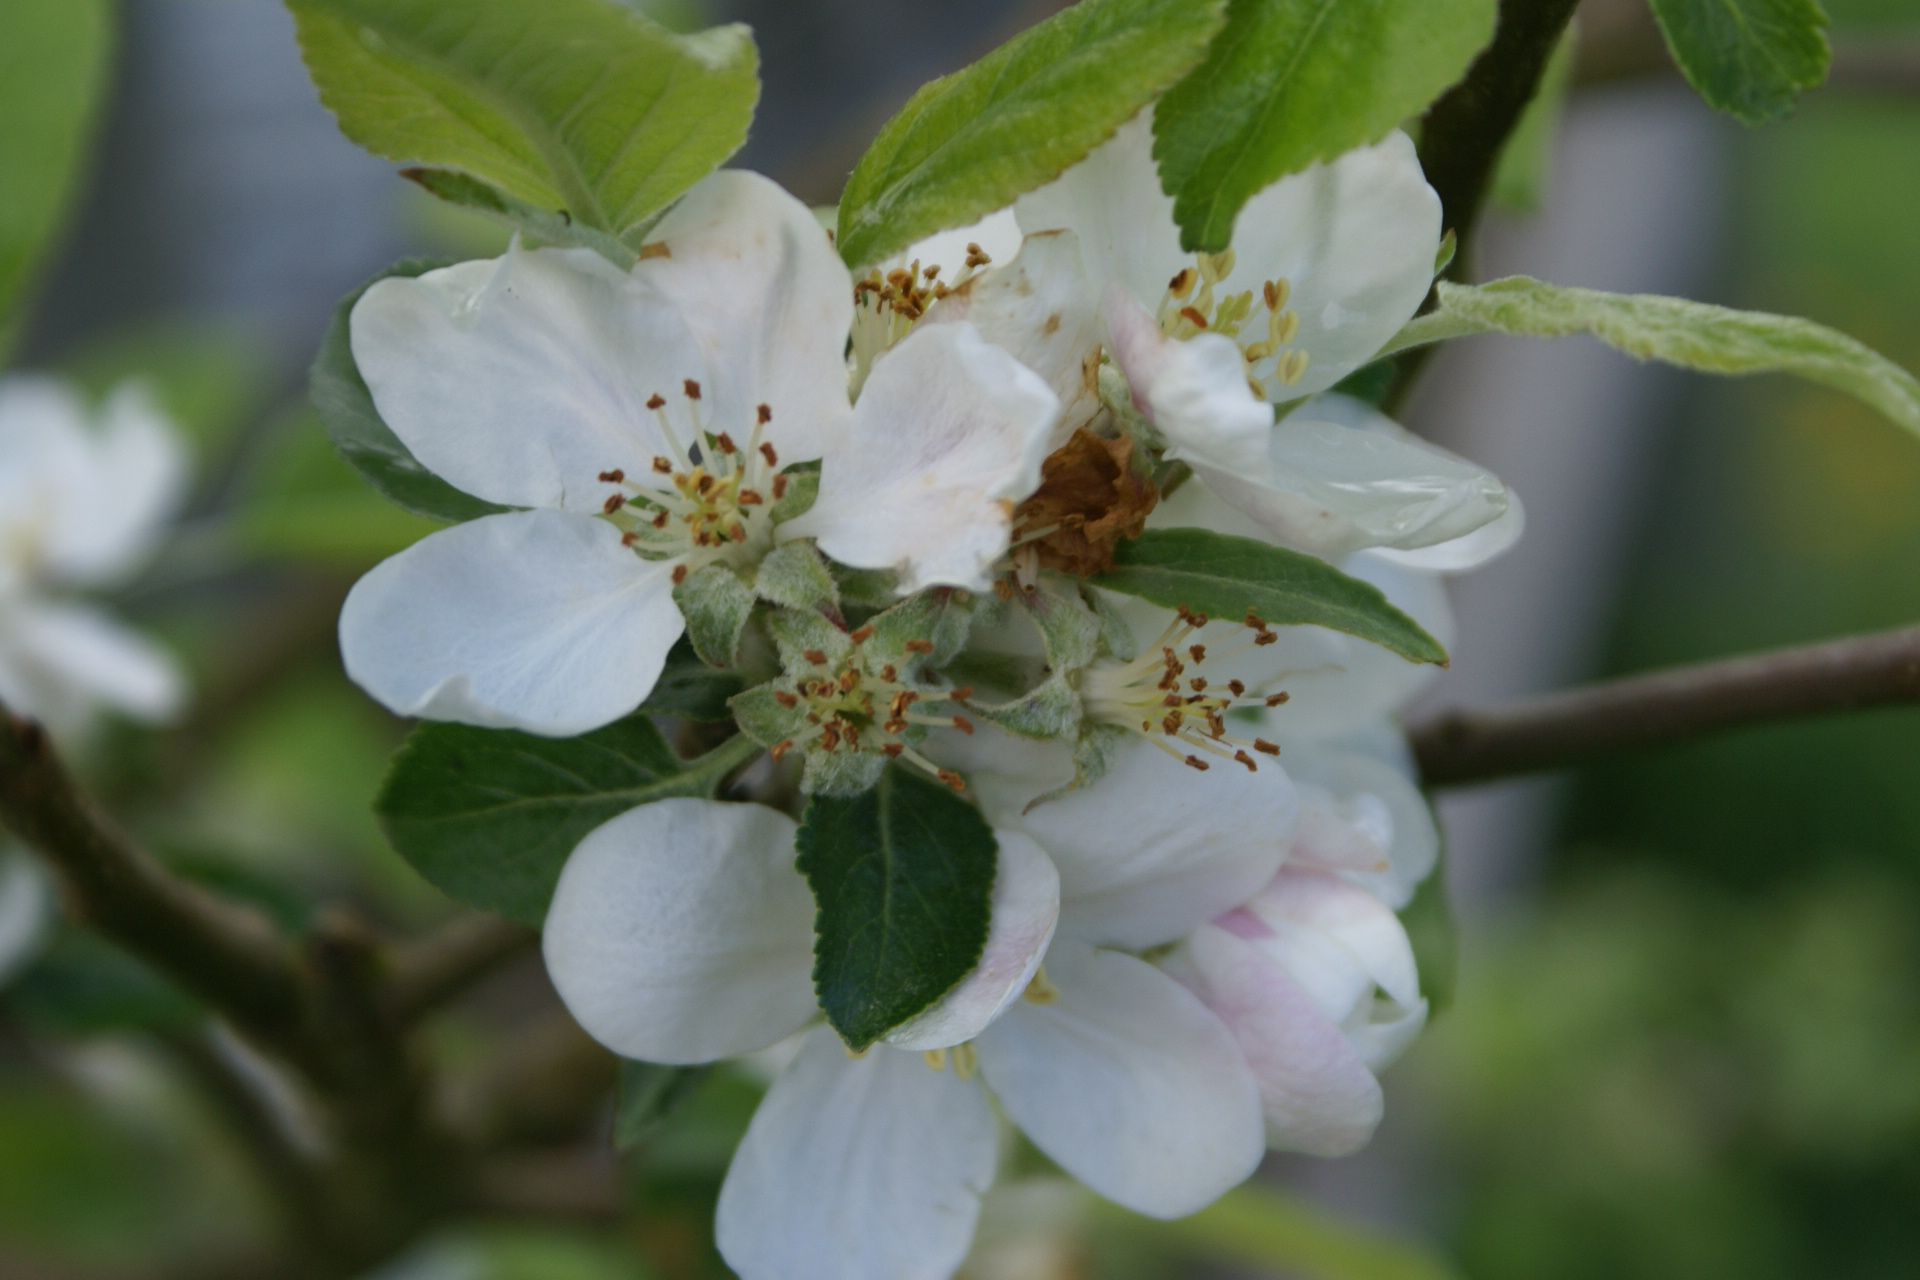 Apple blossom at Eco-Gites of Lenault, a 5 person gite in Normandy.